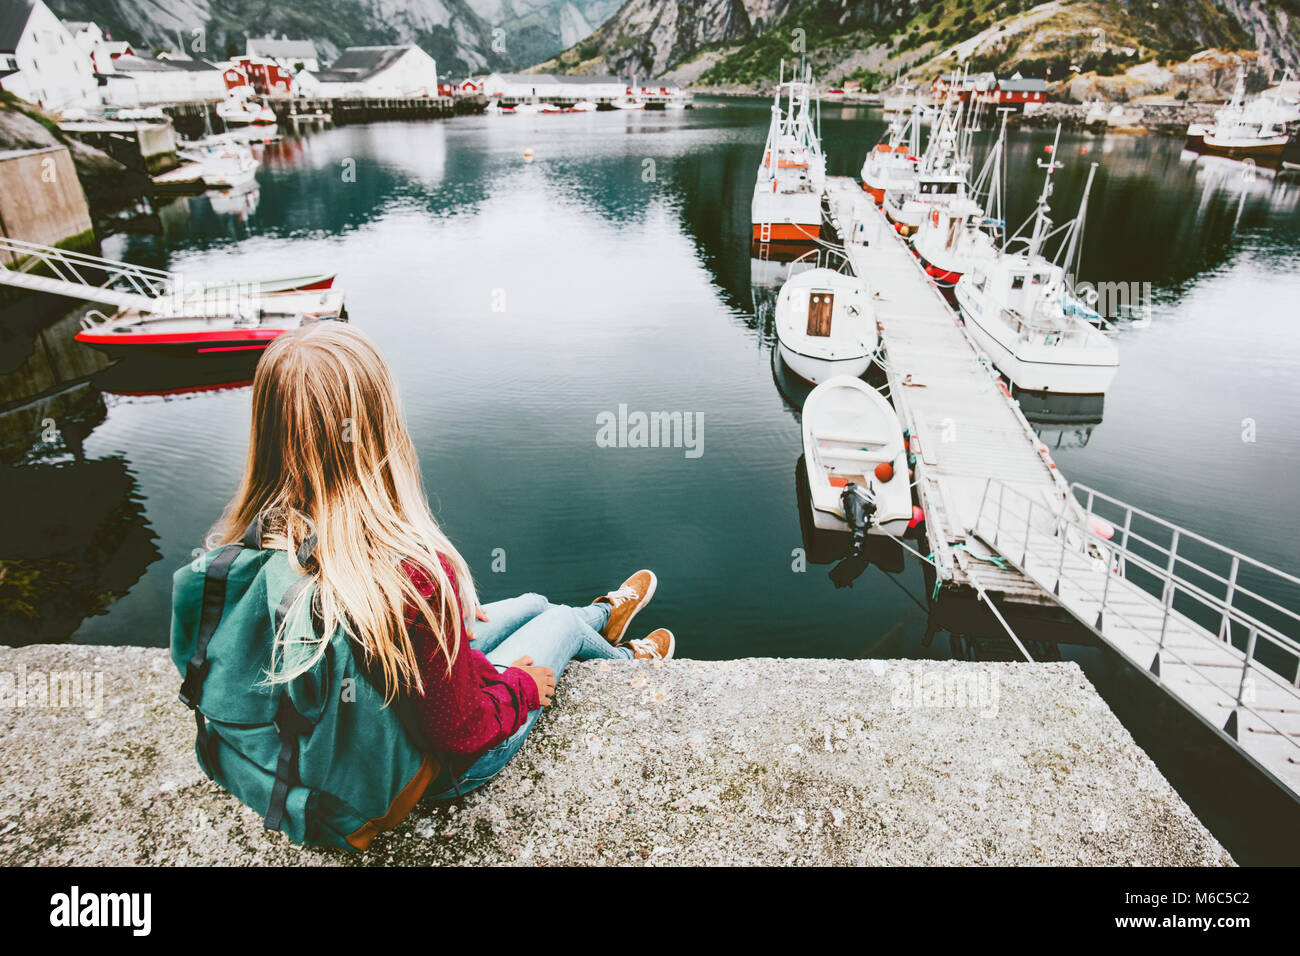 Blonde woman with backpack relaxing on bridge over sea with boats view Travel lifestyle concept adventure outdoor Stock Photo